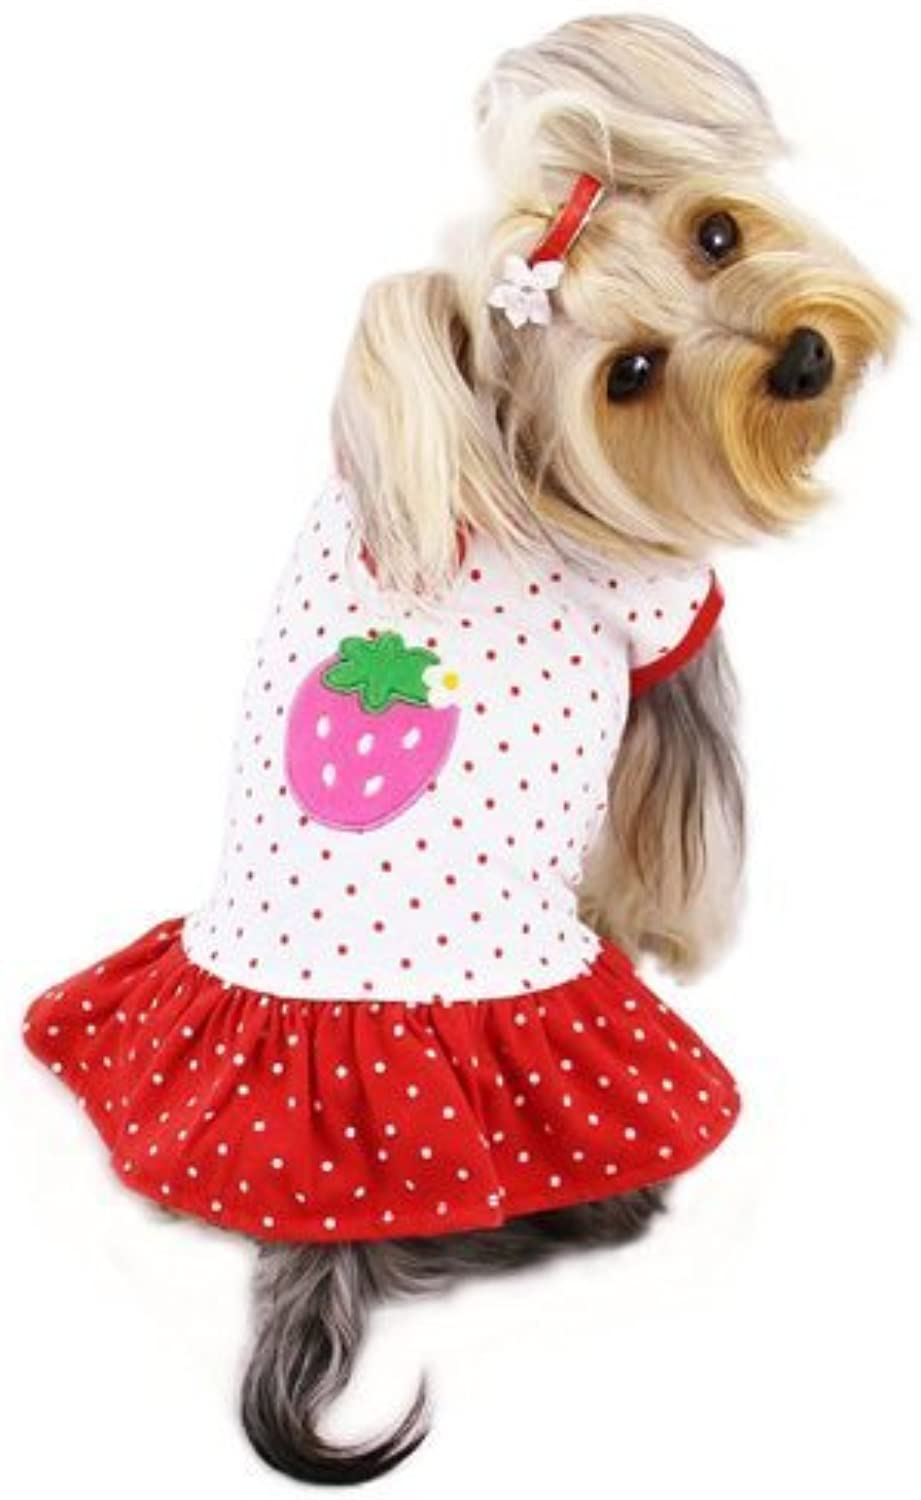 Adorable and Lightweight Dog Dress with Polka Dots and a Strawberry Patch Sizes  Medium by Klippo Pet